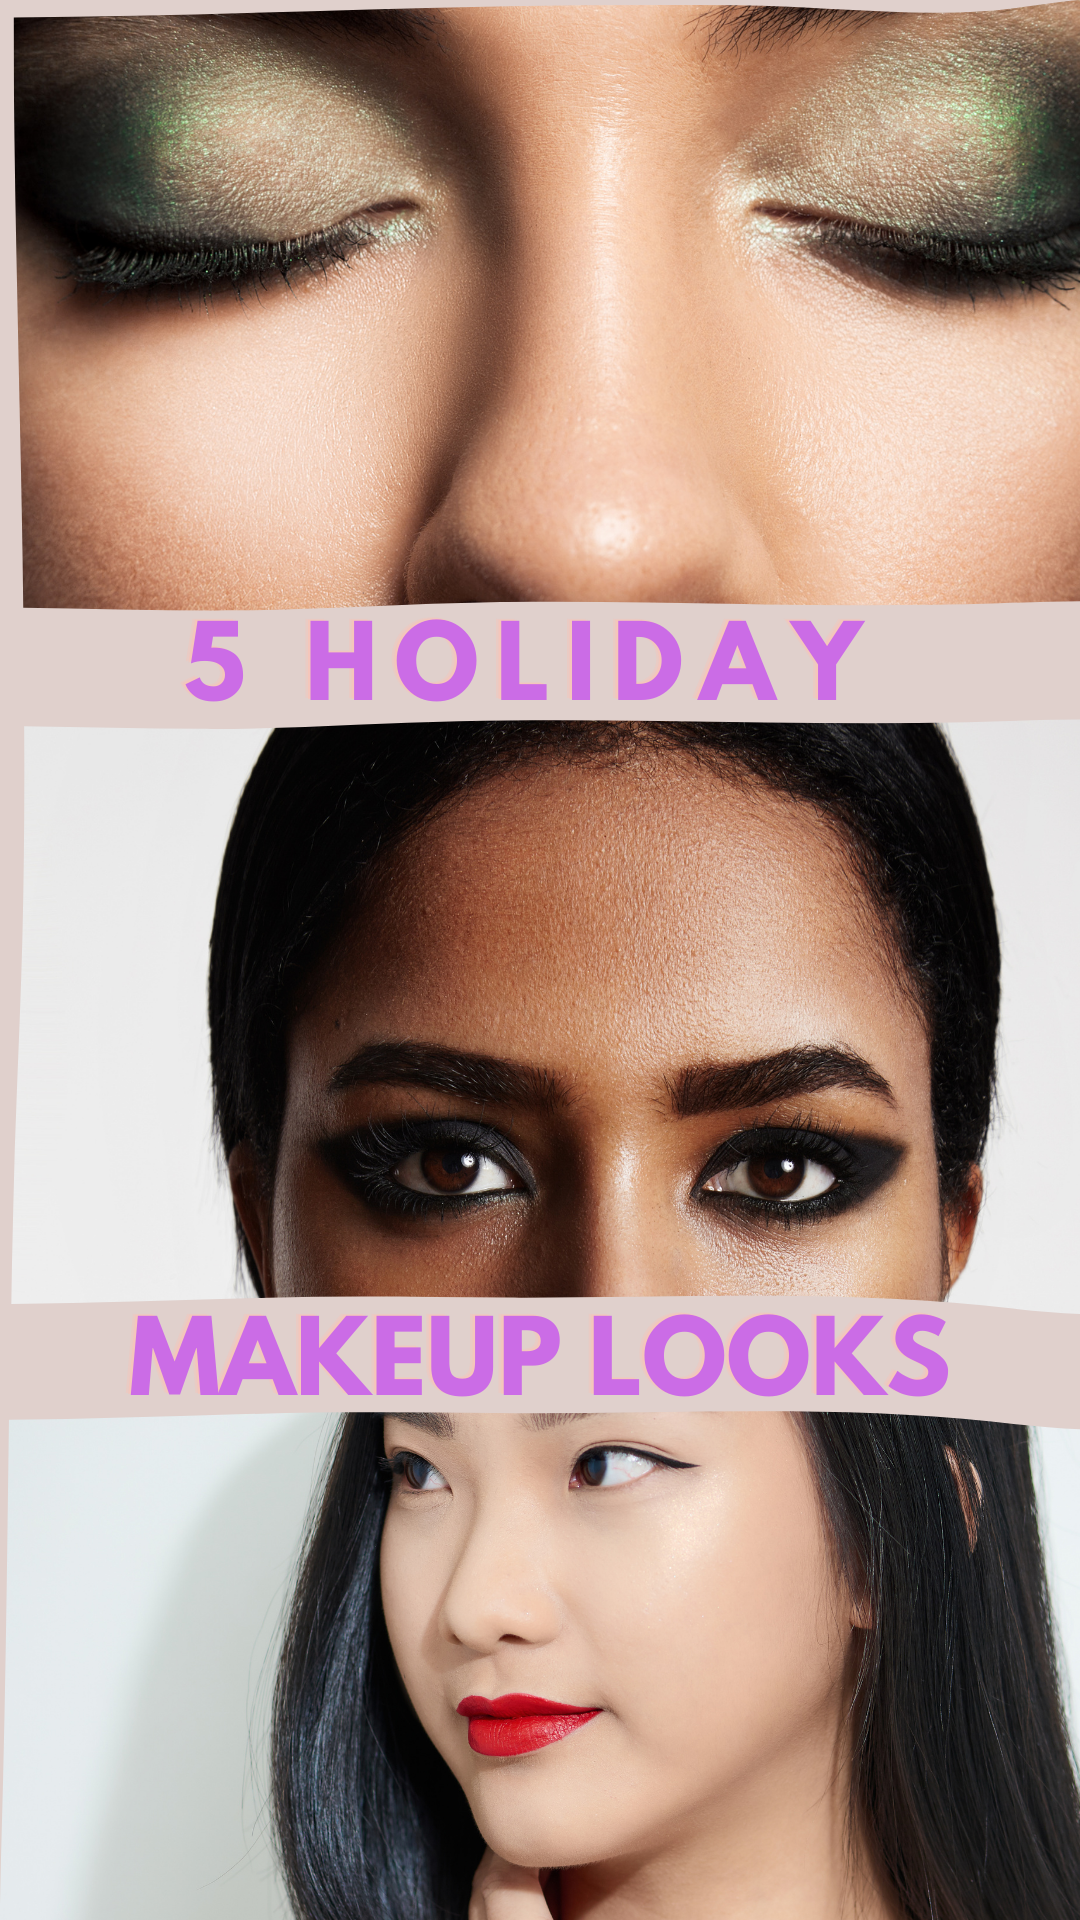 5 holiday makeup looks_ The Guilty Woman